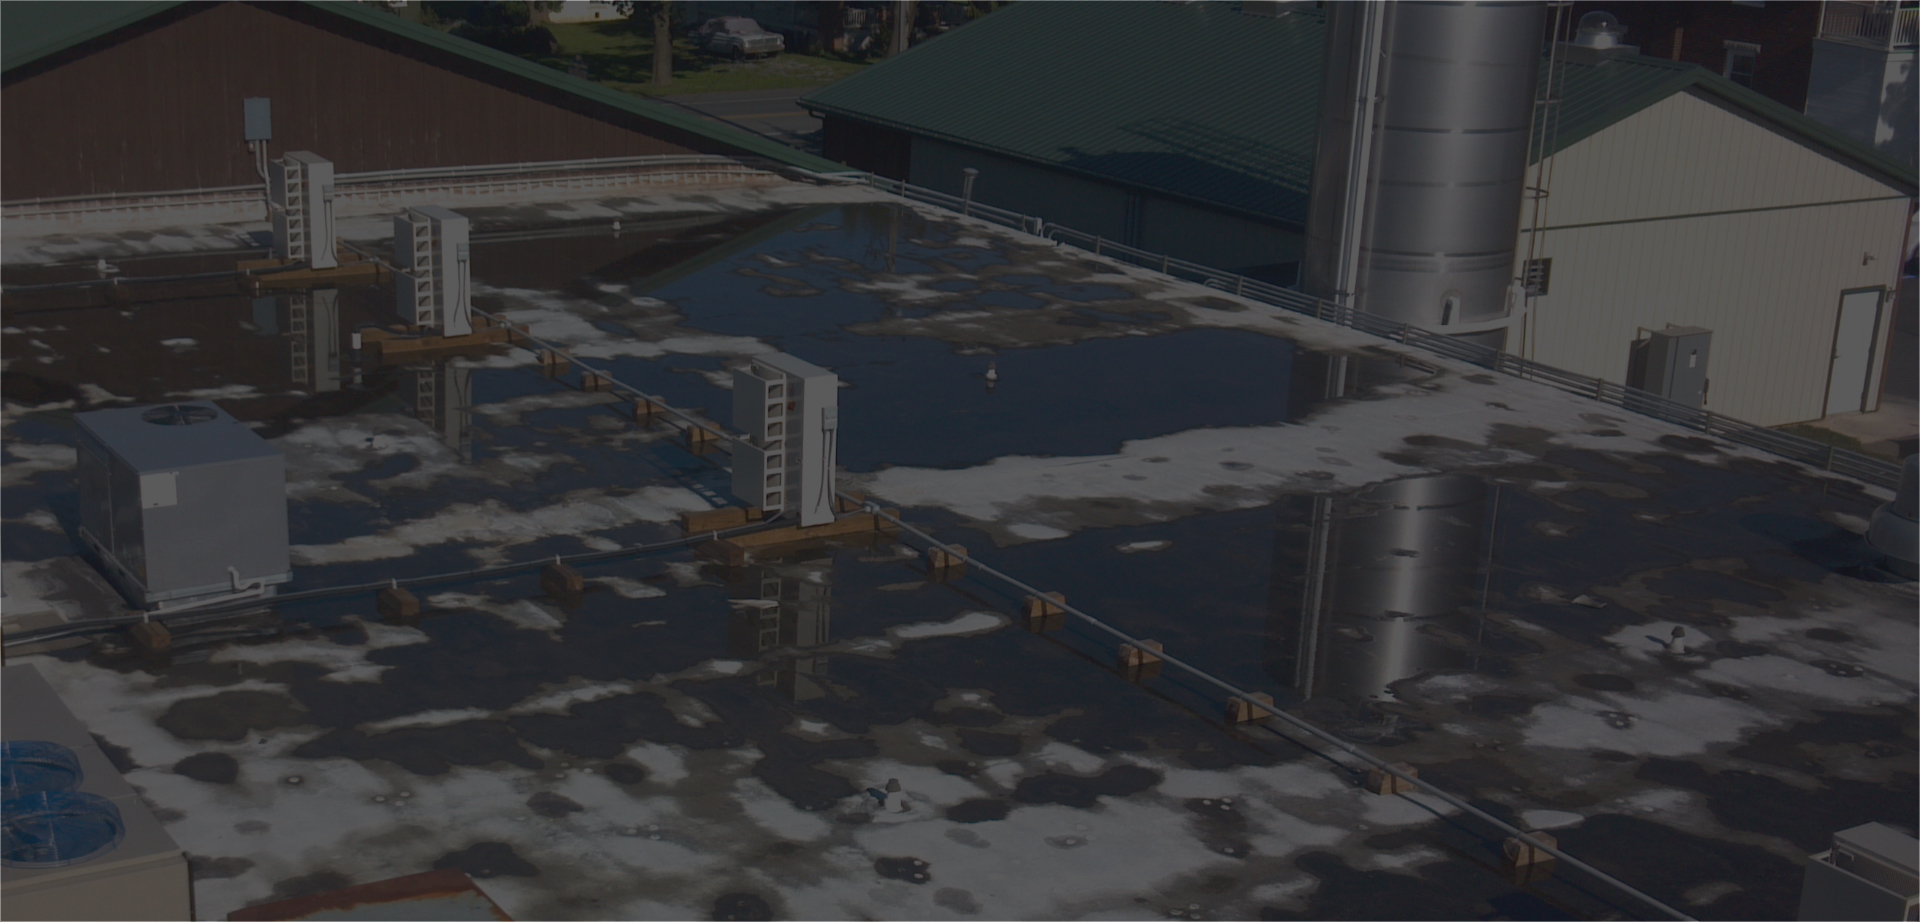 Warehouse Roof with Water Puddles